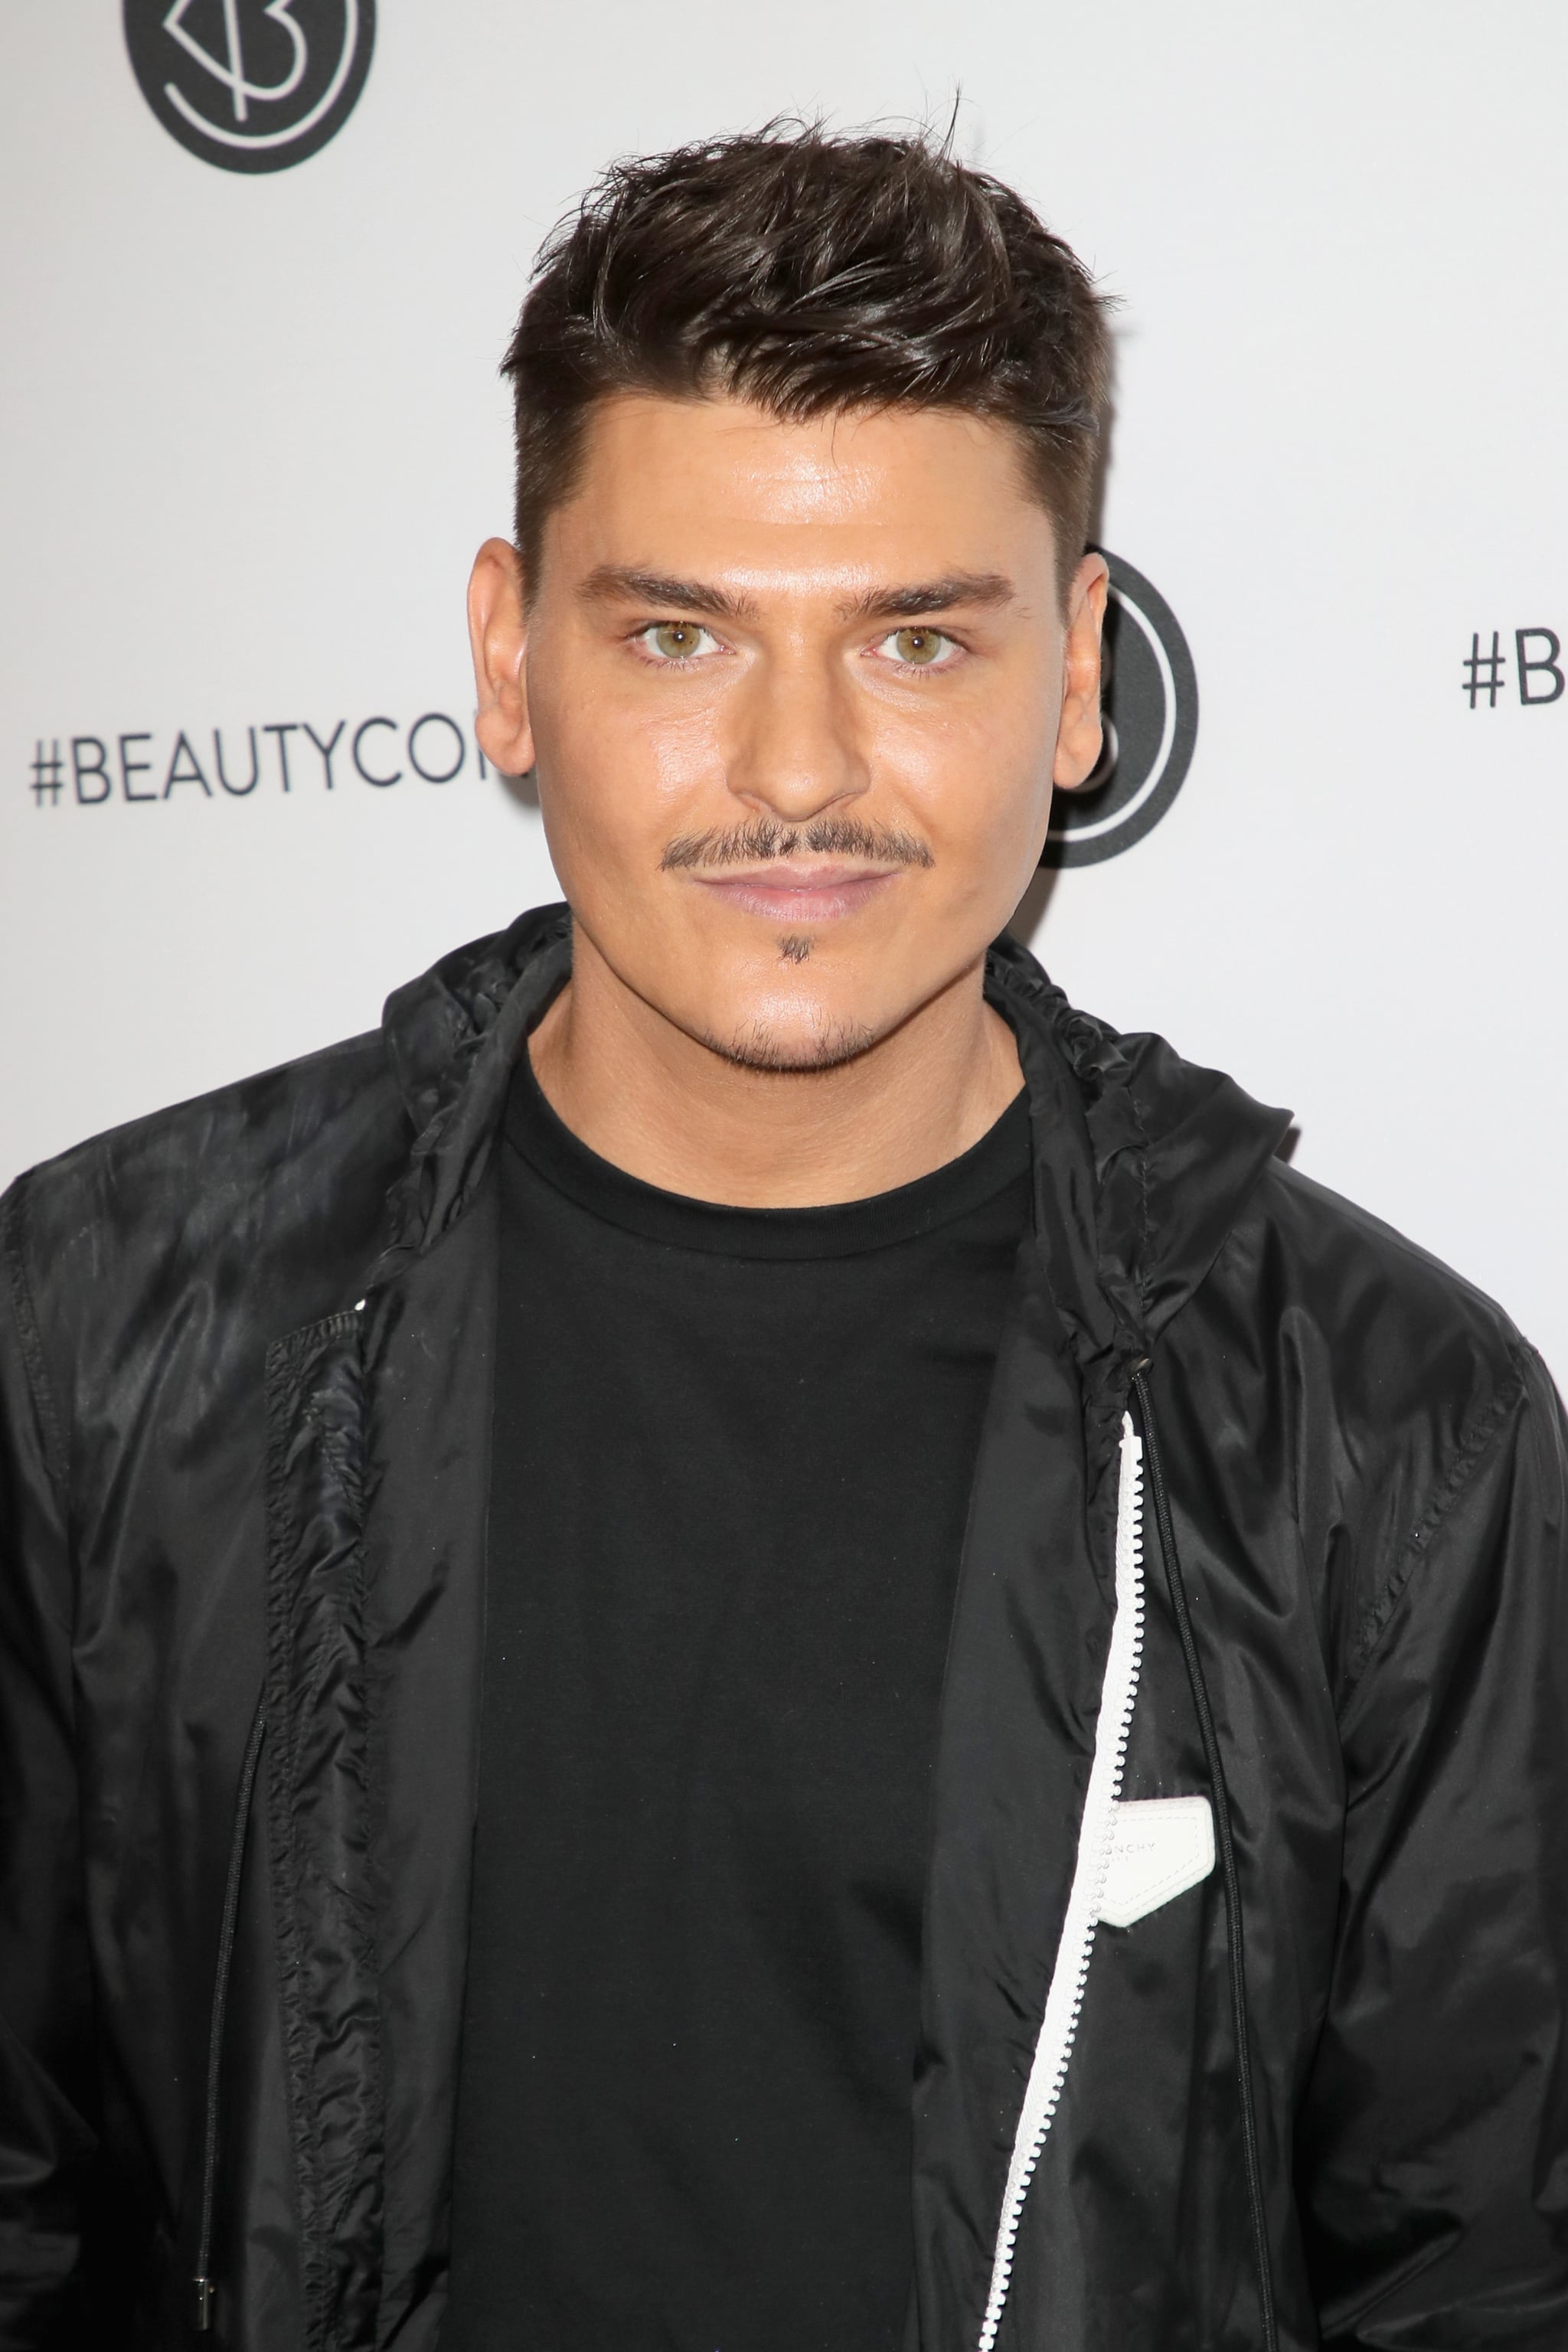 LOS ANGELES, CA - JULY 14:  Mario Dedivanovic attends the Beautycon Festival LA 2018 at the Los Angeles Convention Center on July 14, 2018 in Los Angeles, California.  (Photo by David Livingston/Getty Images)